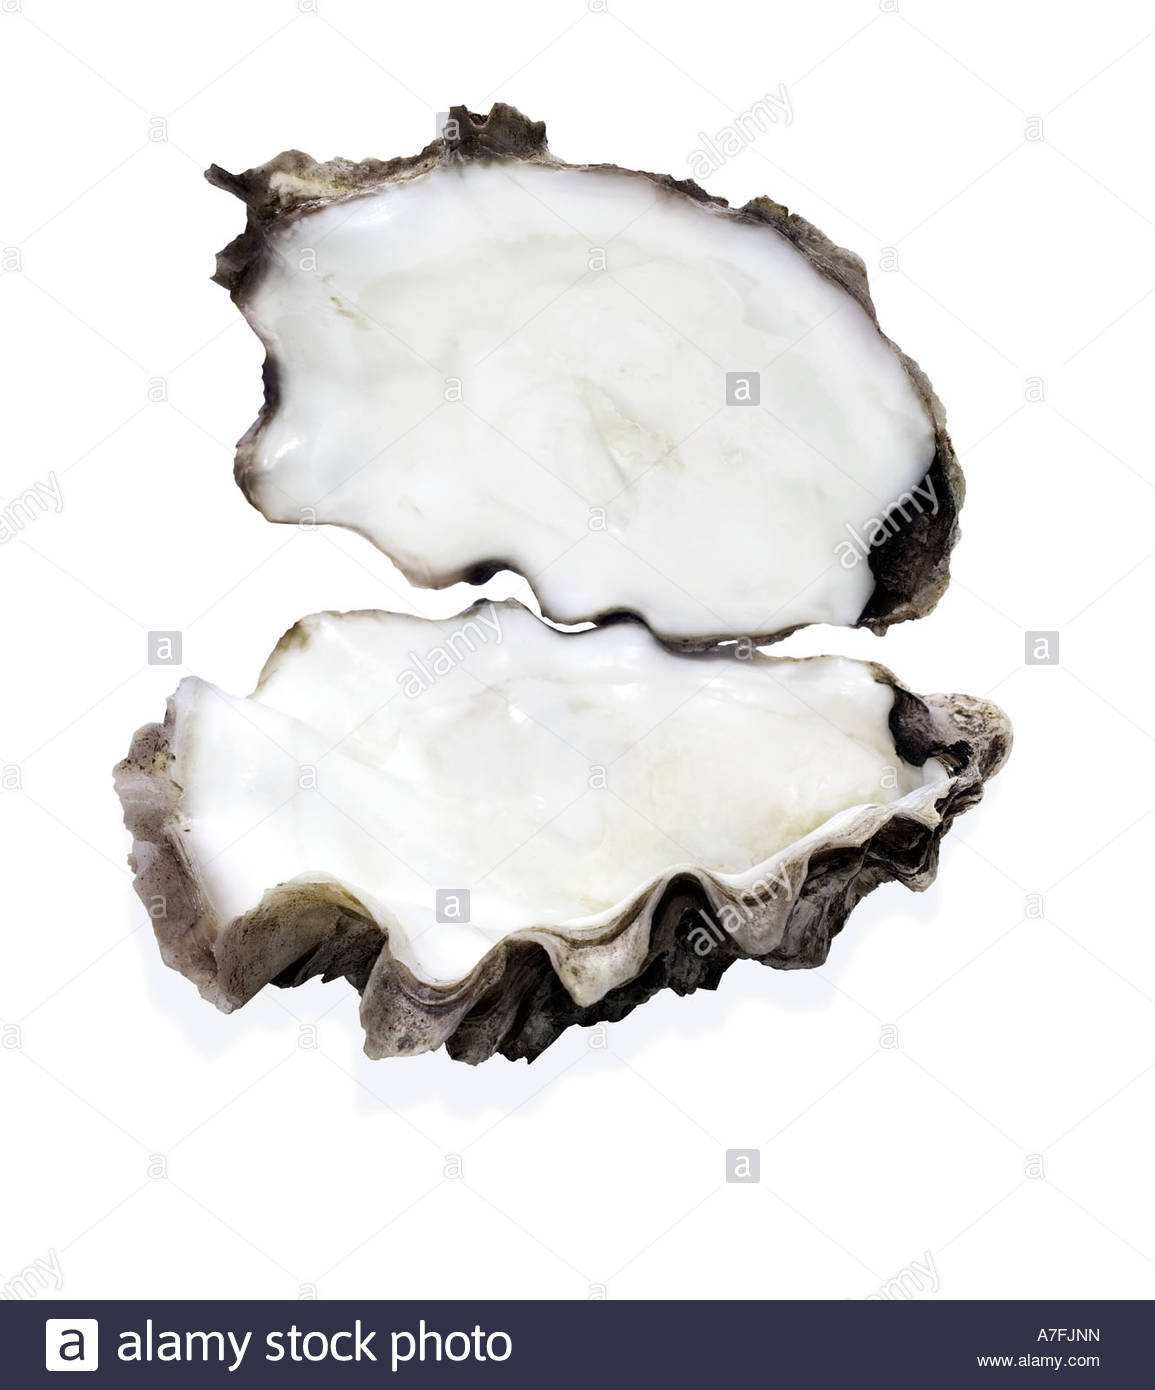 Open oyster shell with pearl